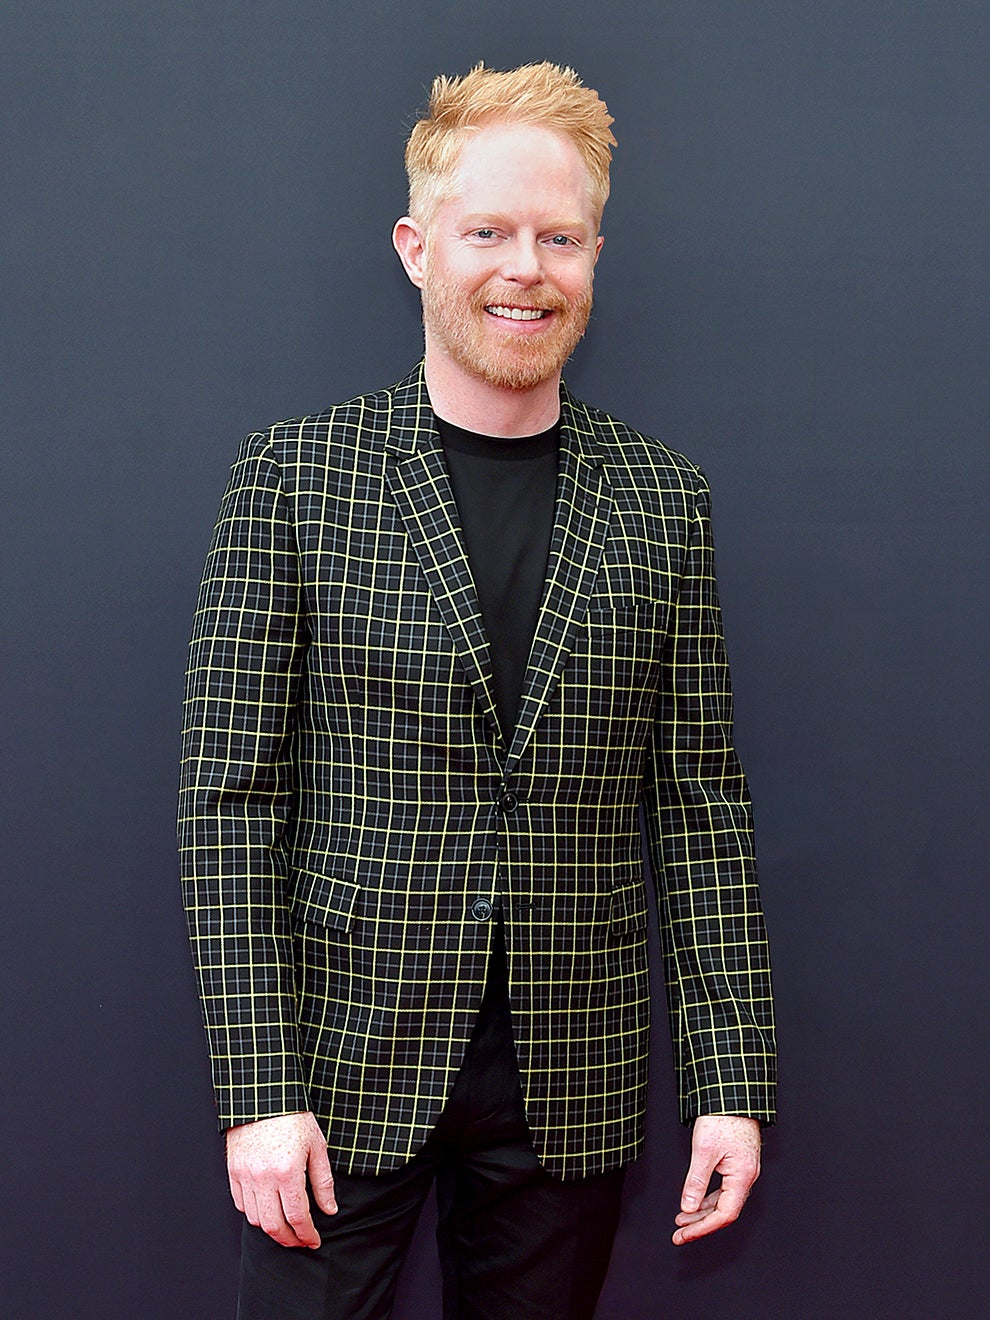 Jesse Tyler Ferguson's Just-Listed Home is $7M, But the Door Color Inspo is Free